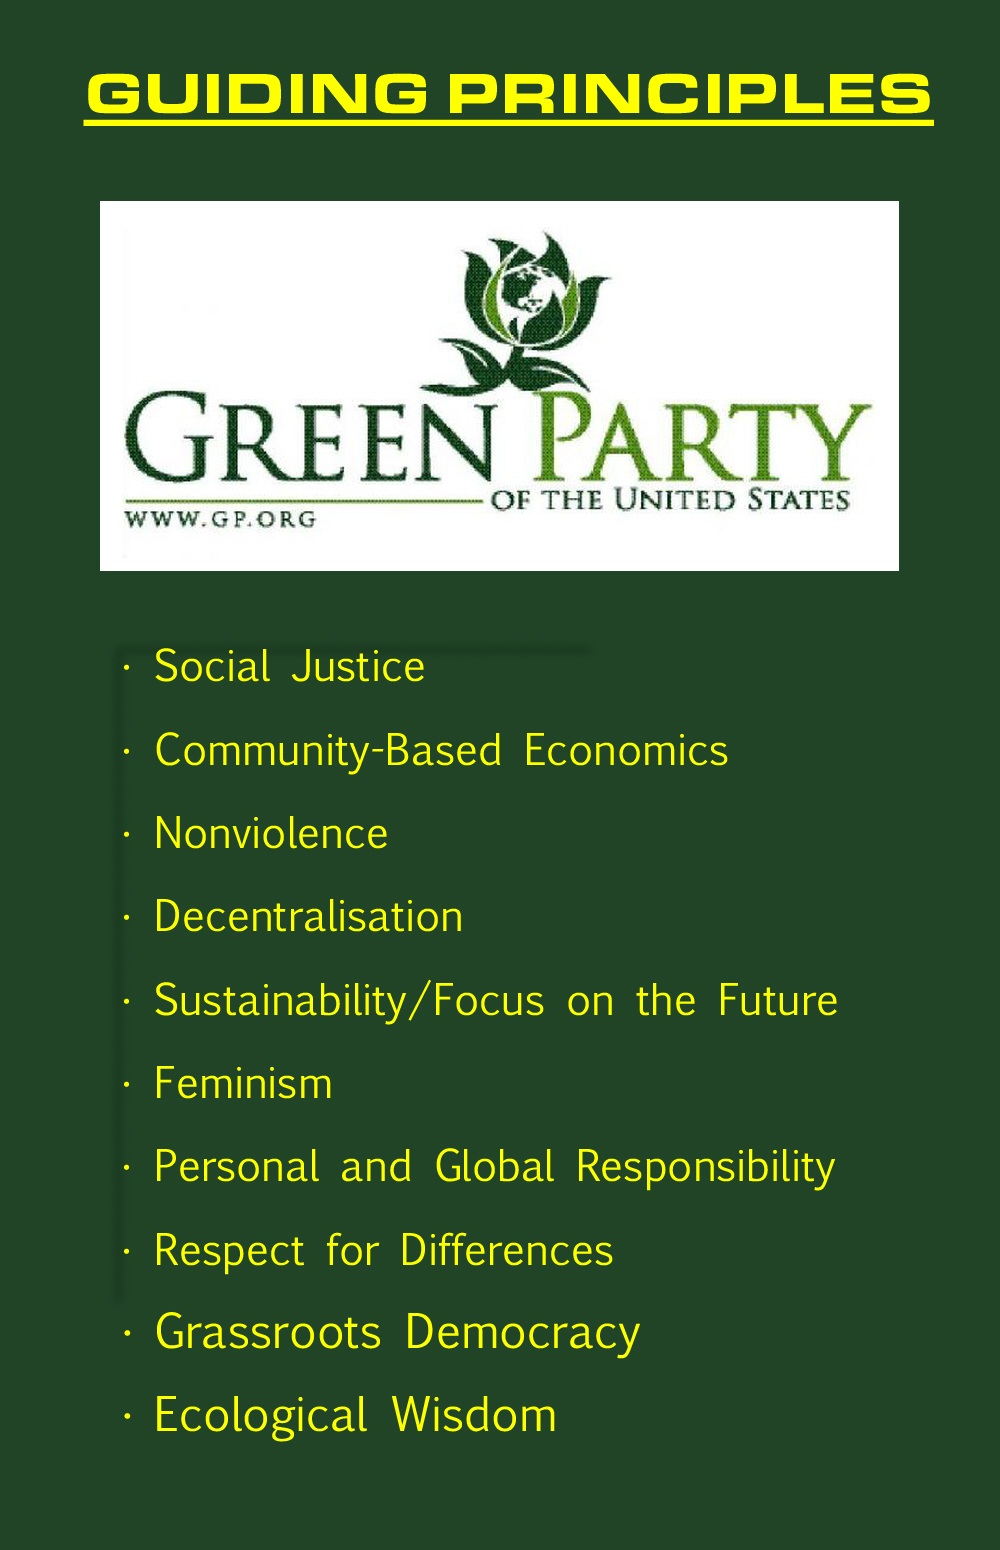 00 Green Party USA. 17.10.12